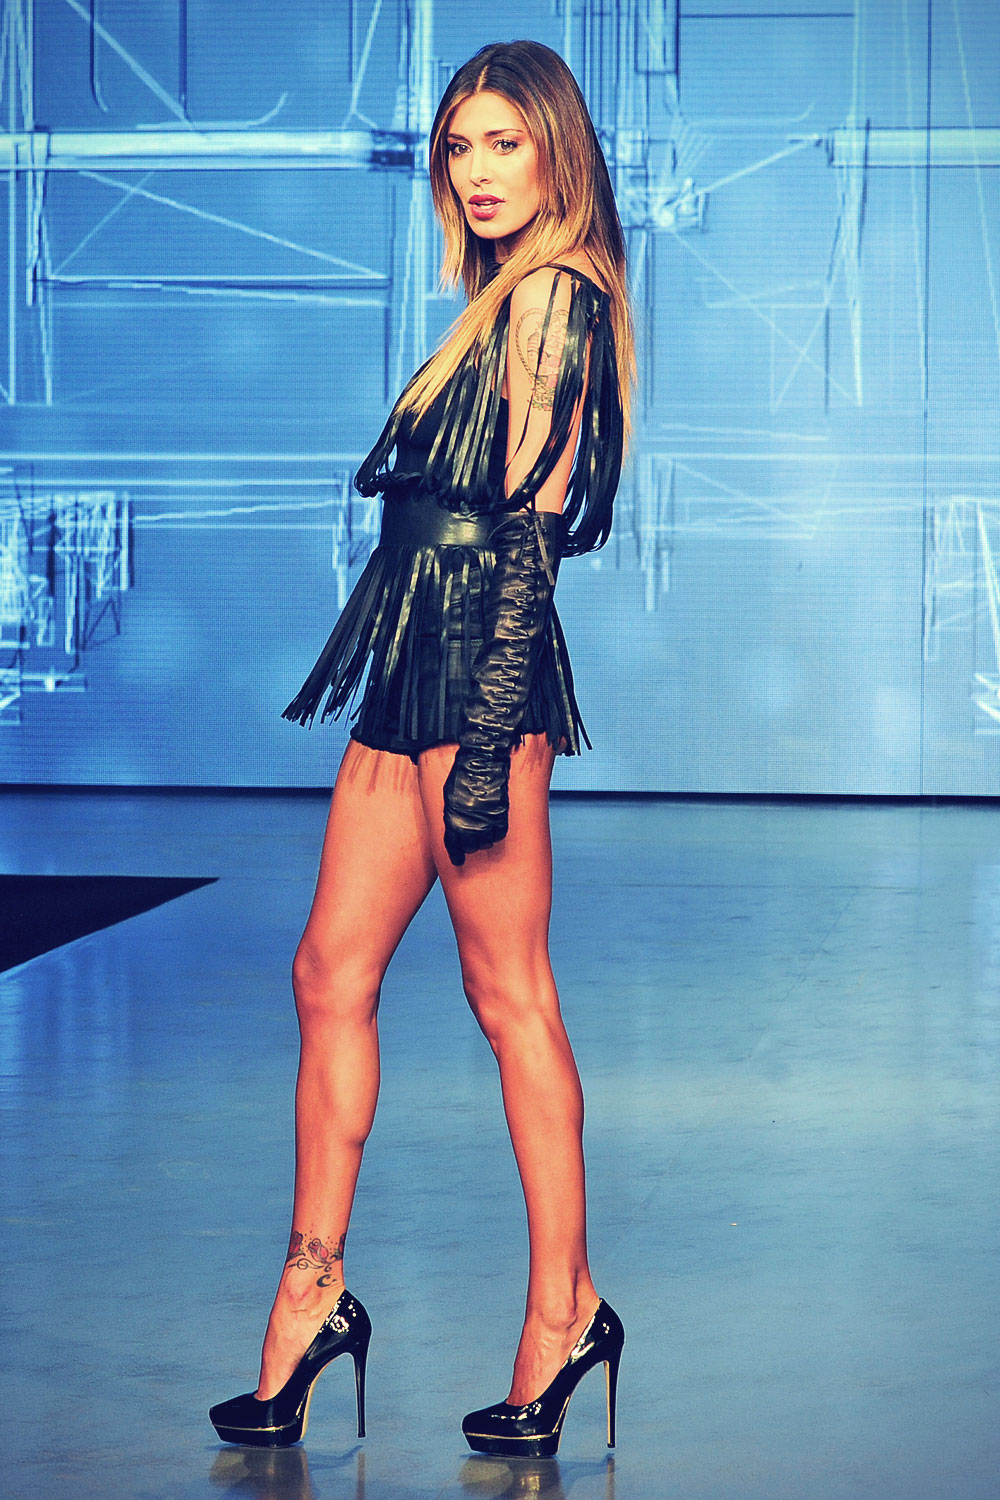 Belen Rodriguez on the catwalk at Imperfect show